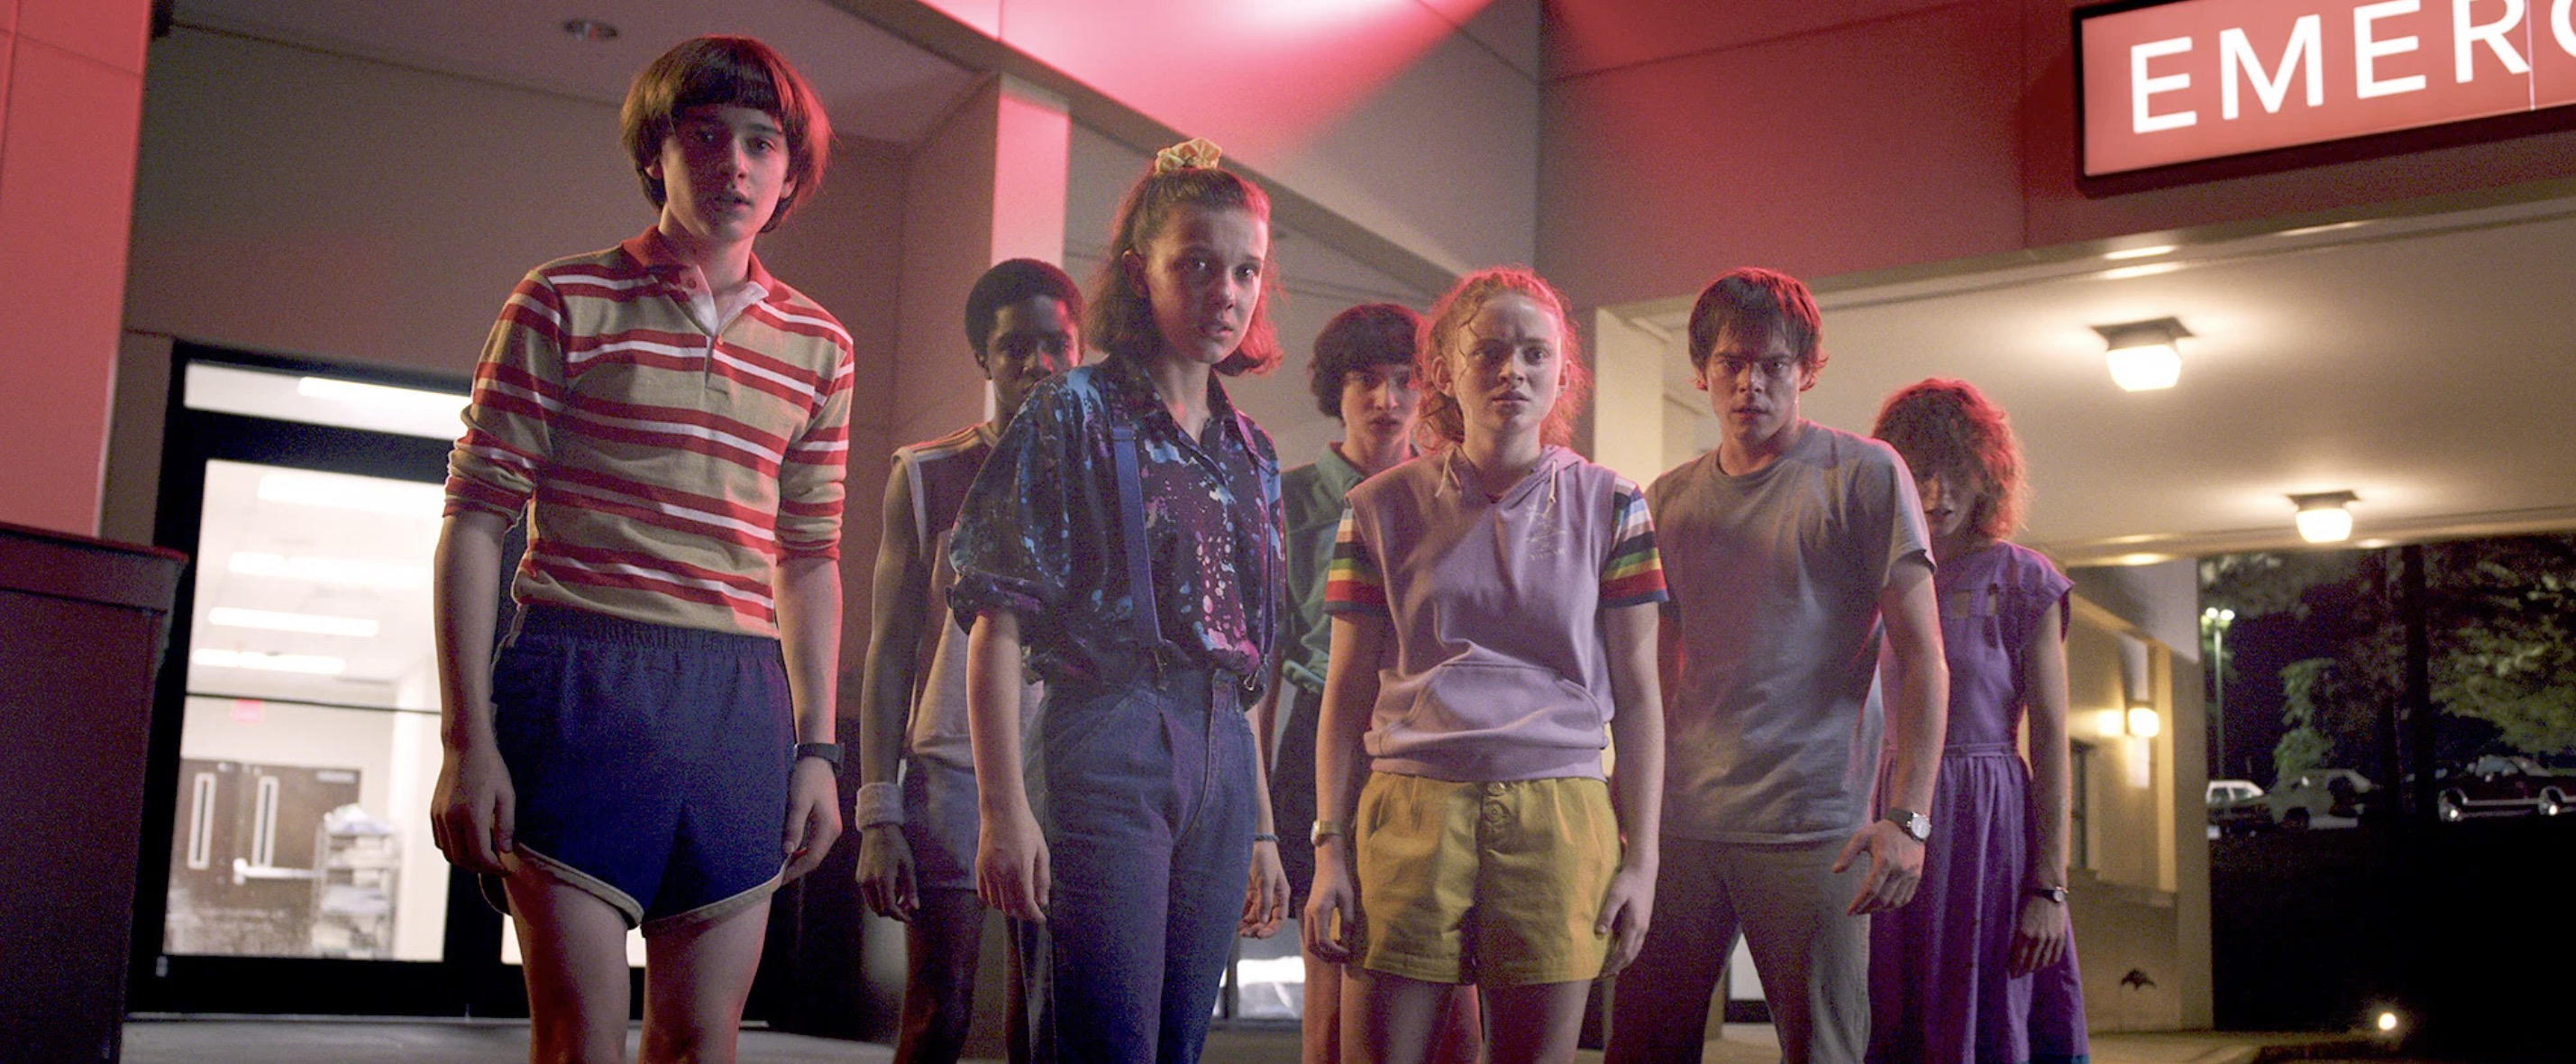 The Wait For 'Stranger Things' Season 4 Continues, But Don't Worry, 'It's Coming Soon'